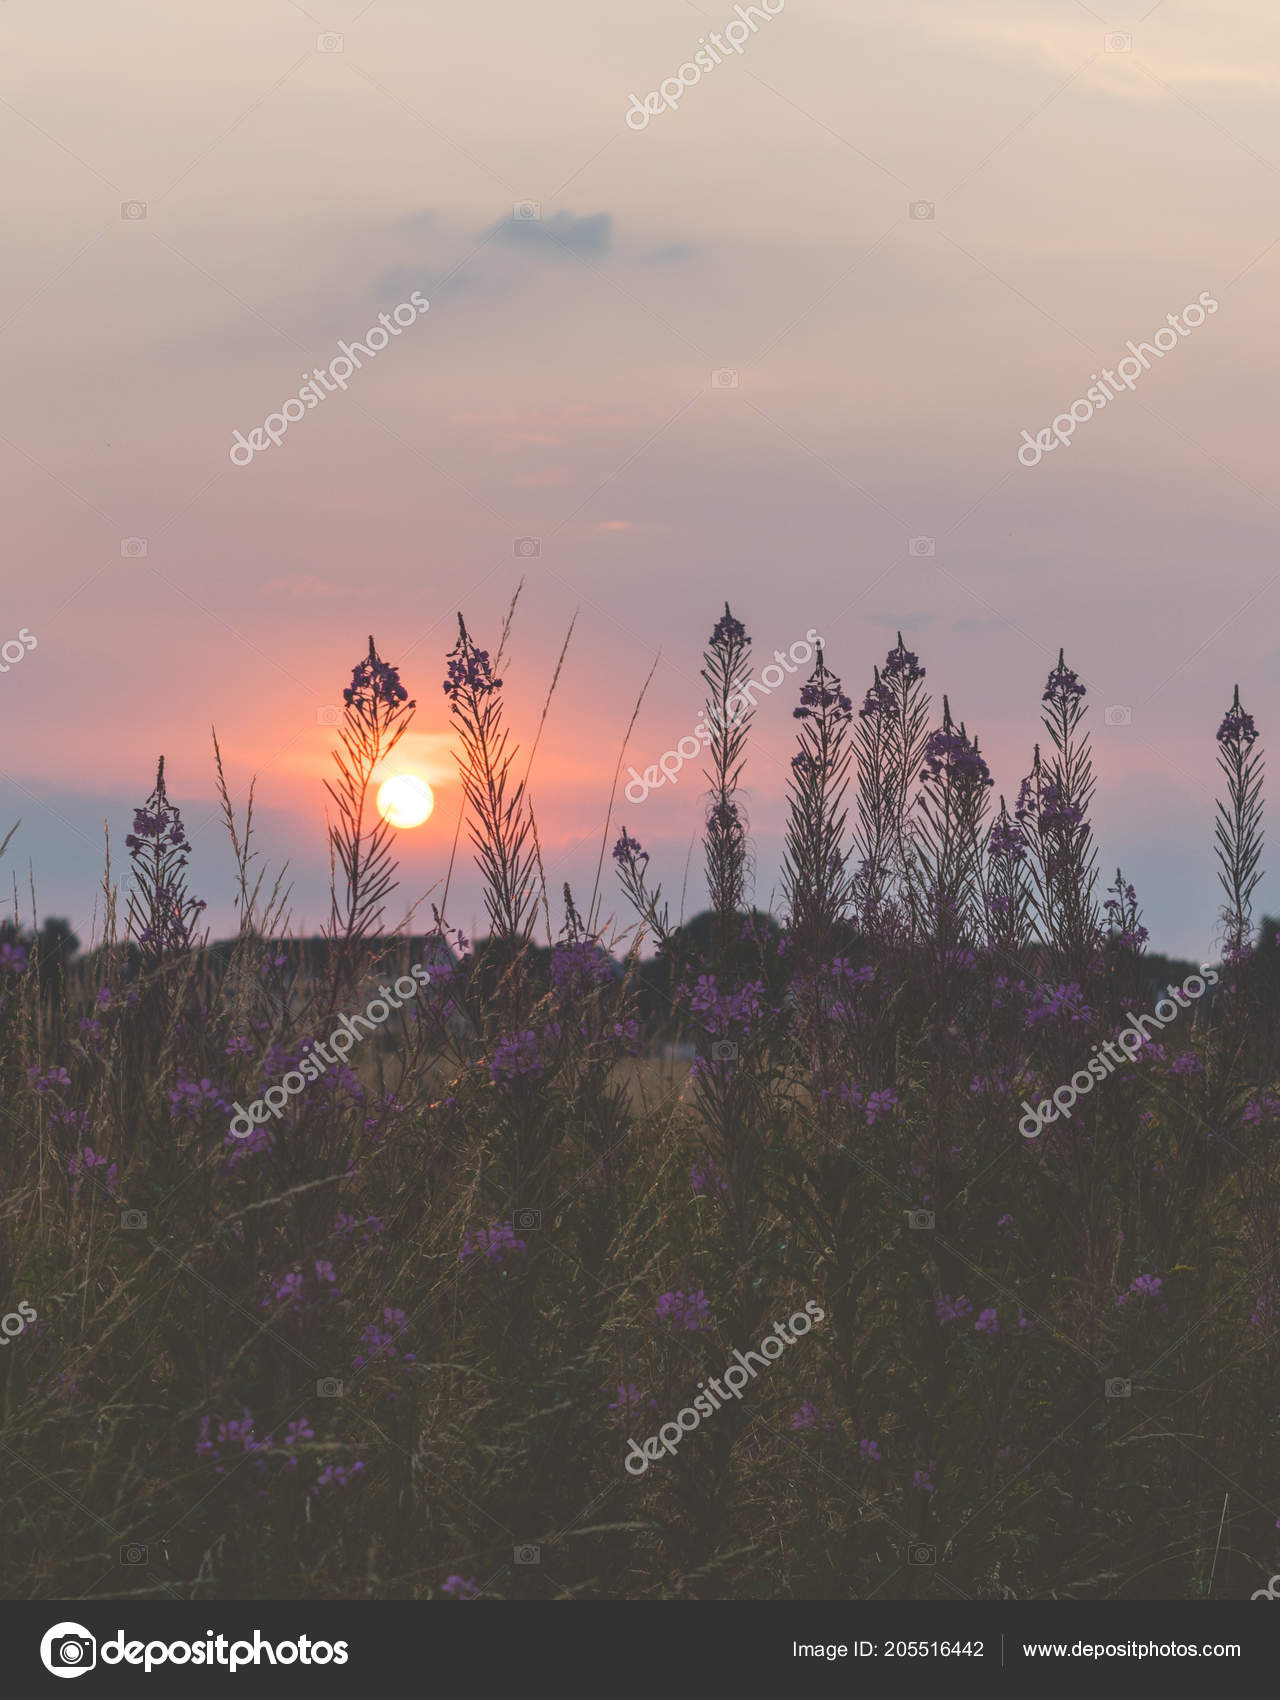 Beautiful Sunset Field Purple Flowers Bochum Germany Stock Photo C Brunosommerfeld 205516442